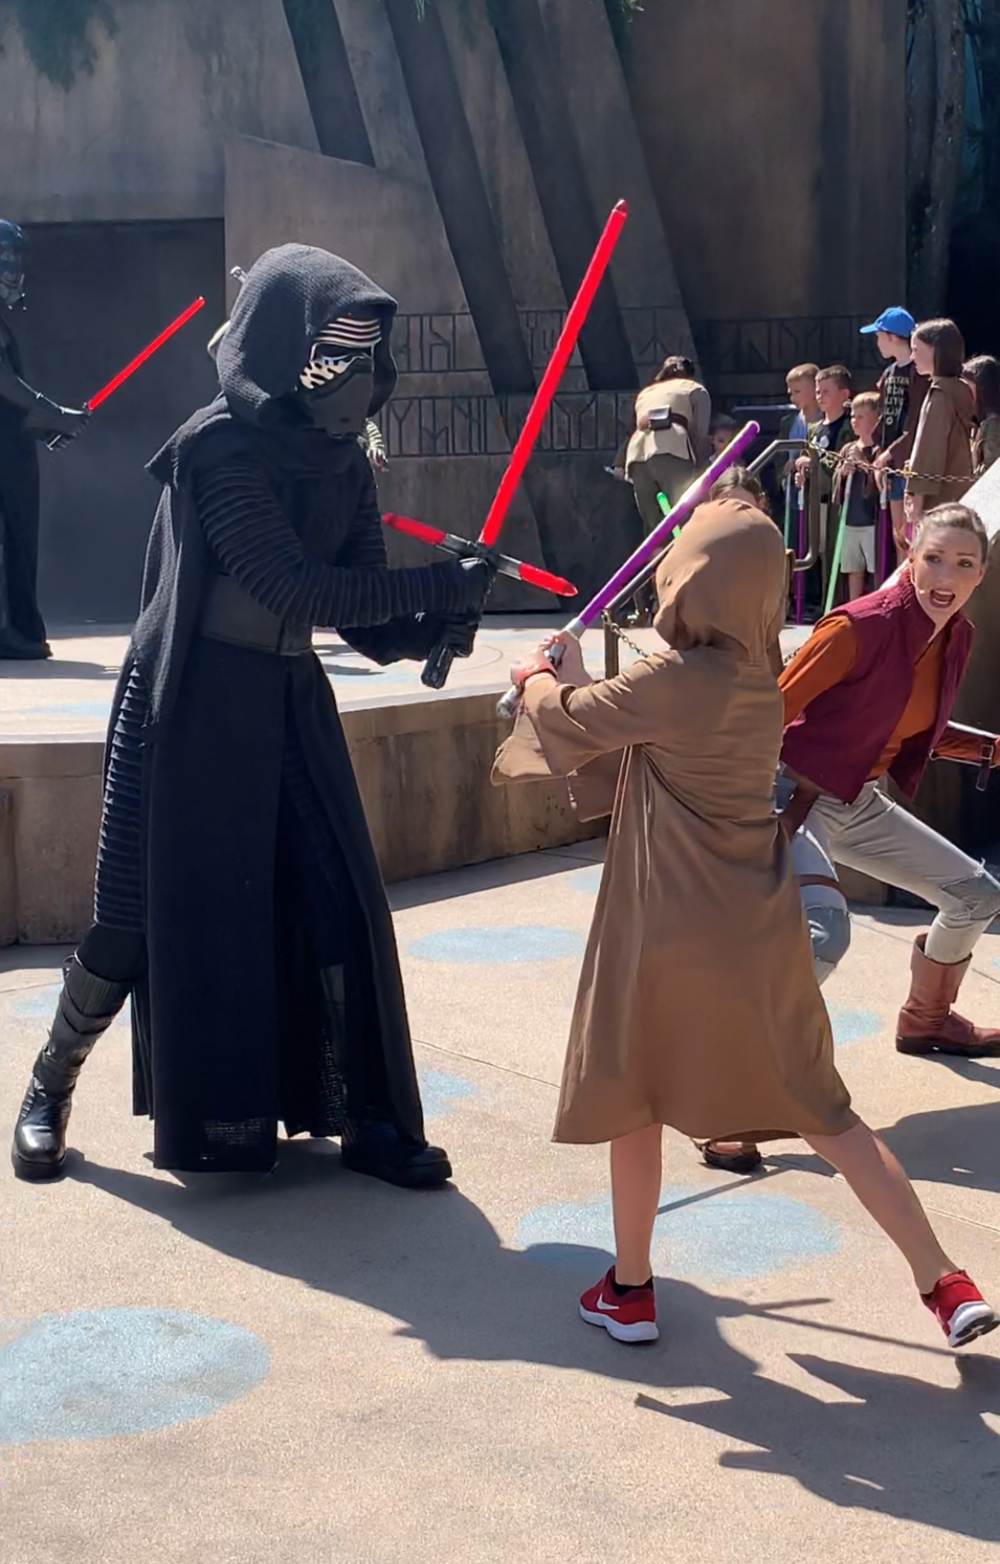 When your son has battled Kylo Ren you share the image!